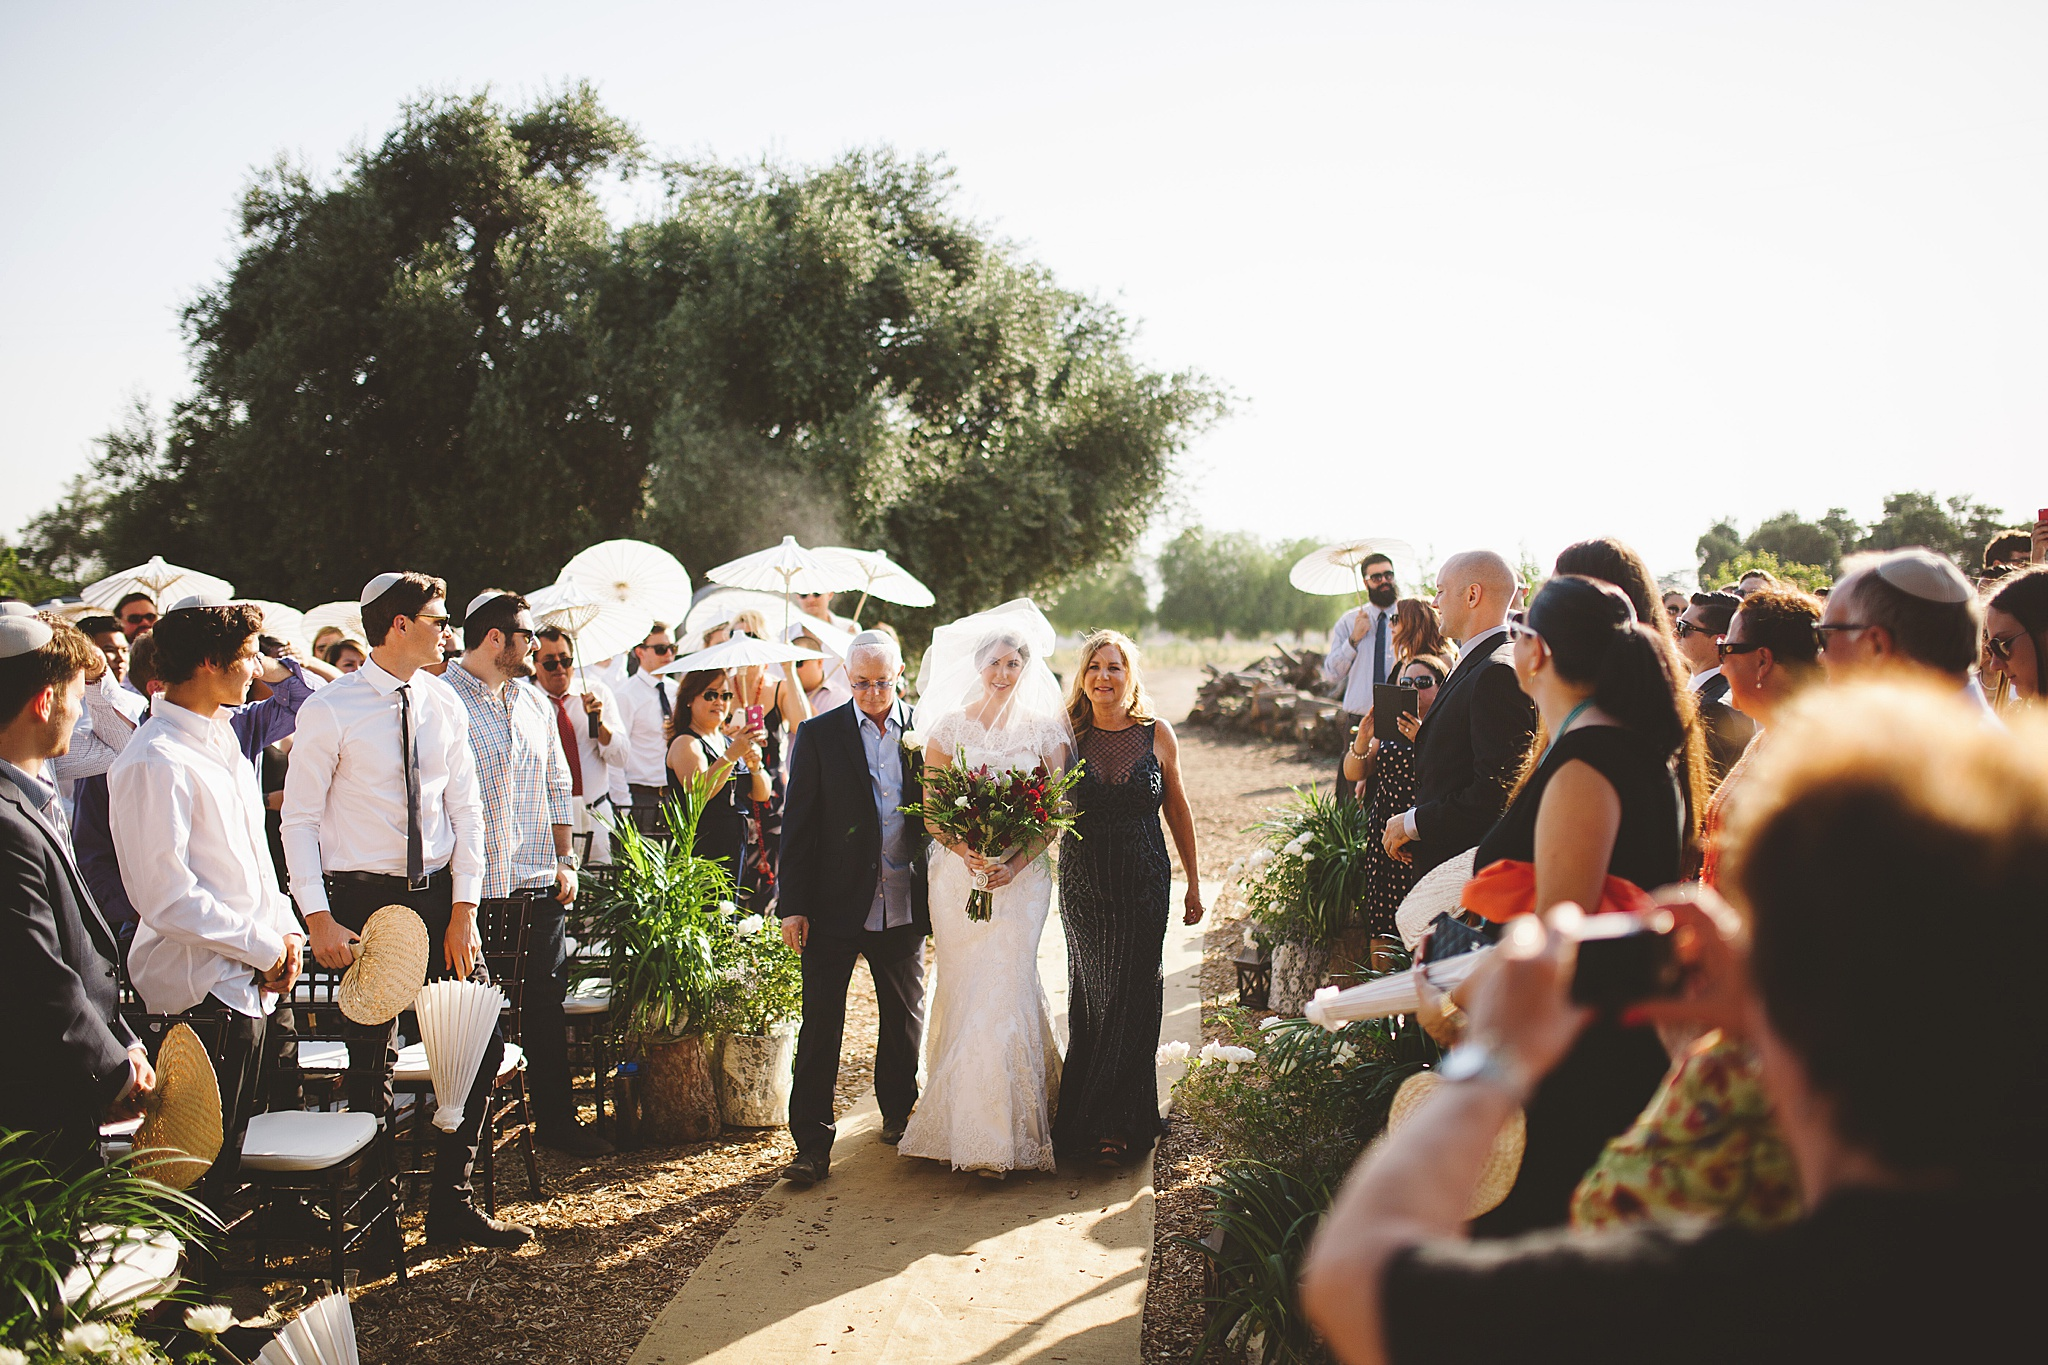 Jewish wedding photographer in Los Angeles